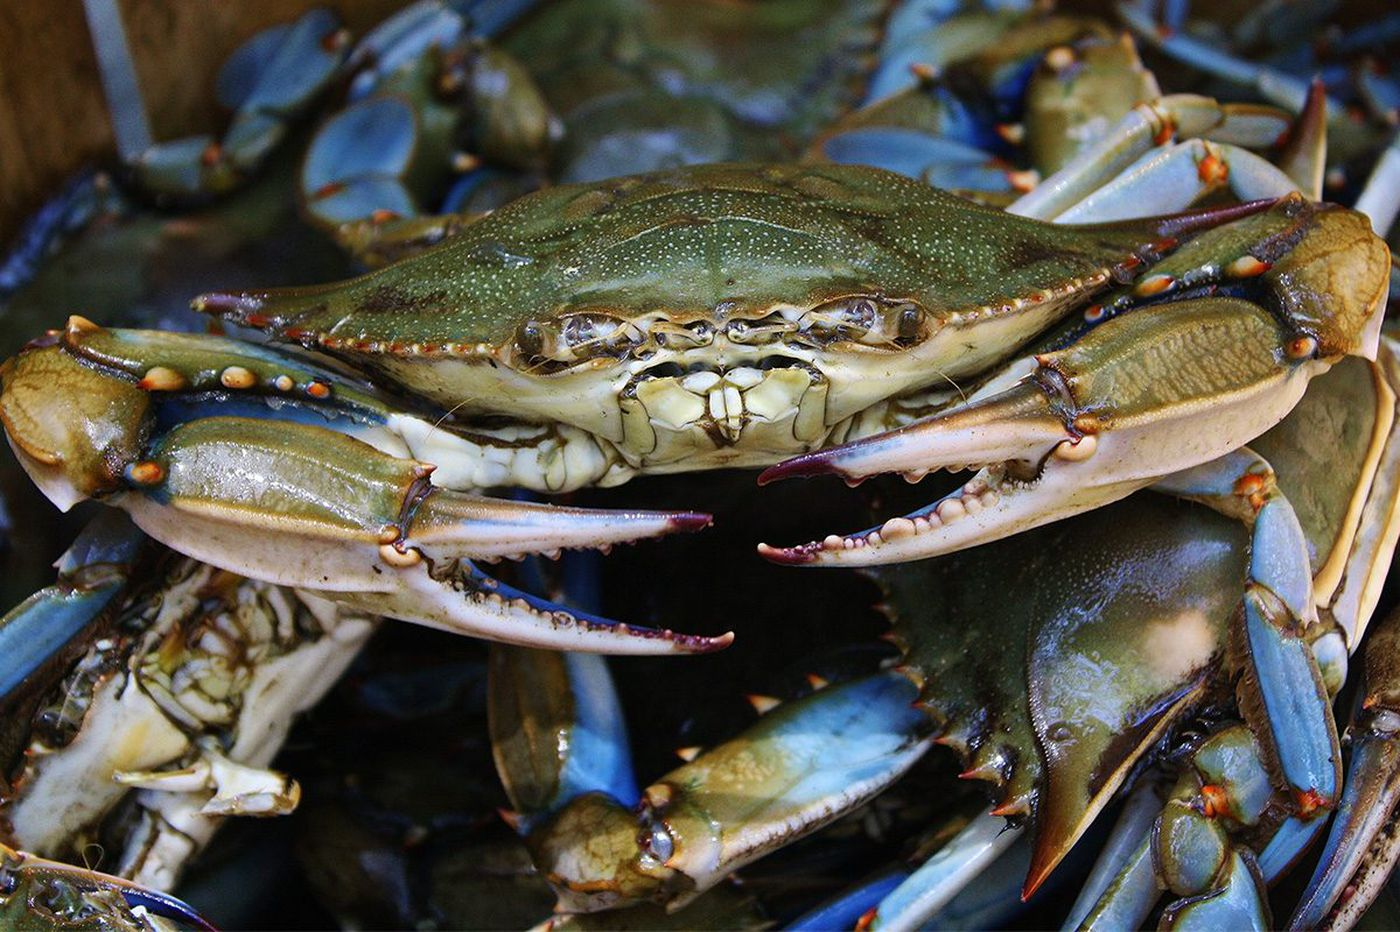 Penn State researchers use crab shells, wood to make eco-friendly packaging